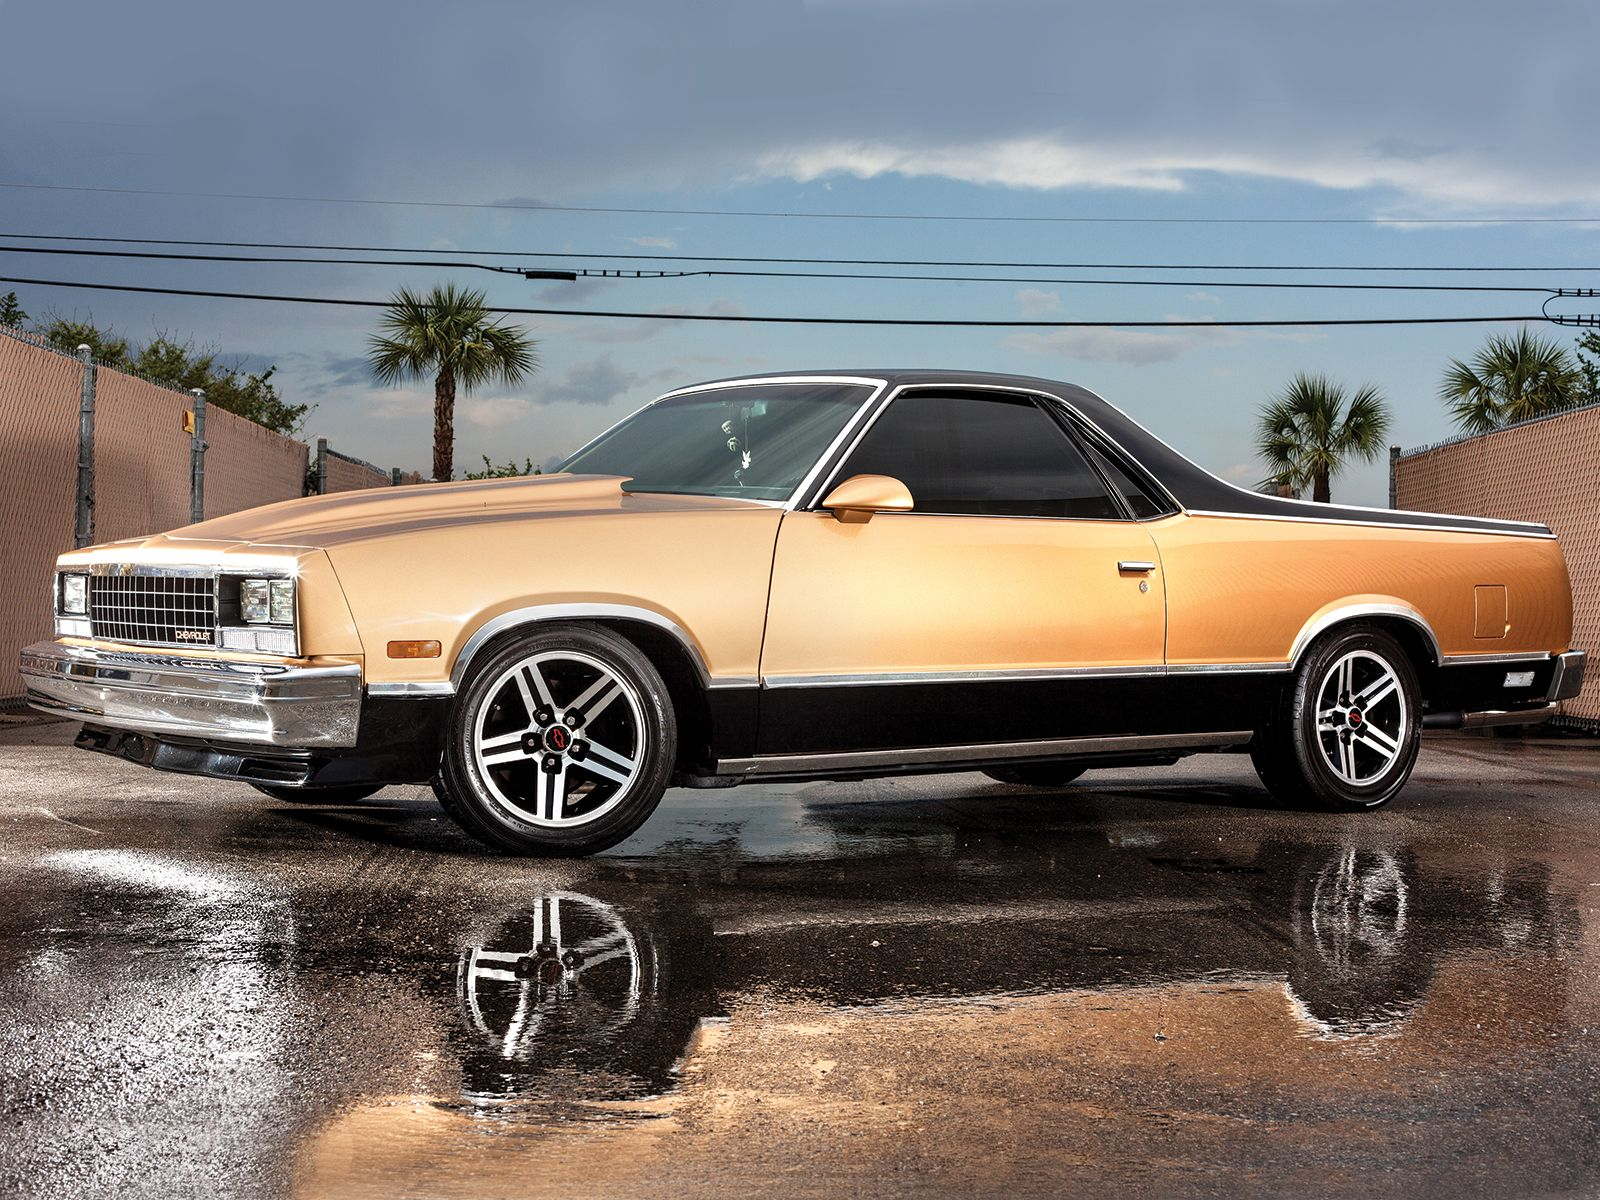 1986 Chevrolet El Camino Front Side View Jpg 1600 1200